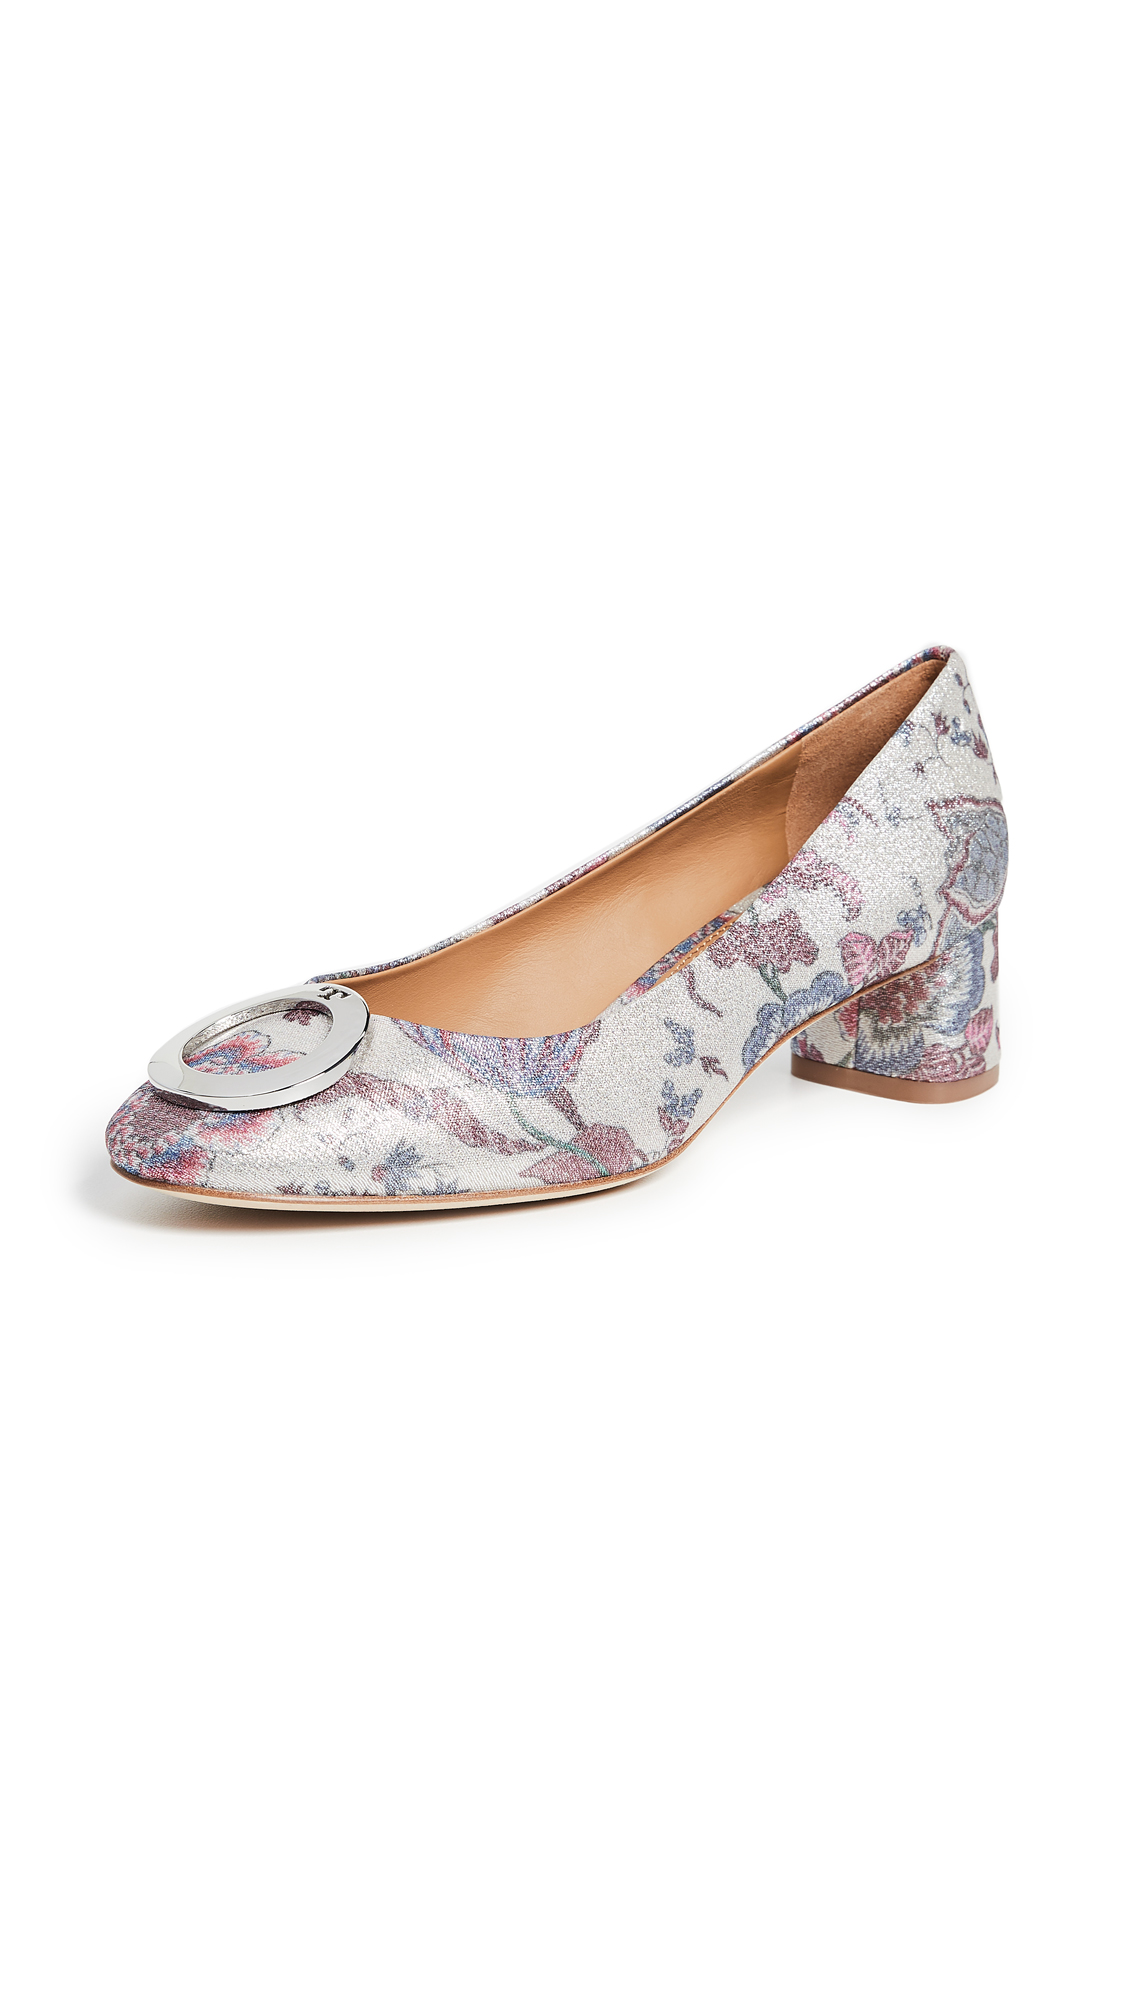 Tory Burch Caterina Pumps - Happy Times